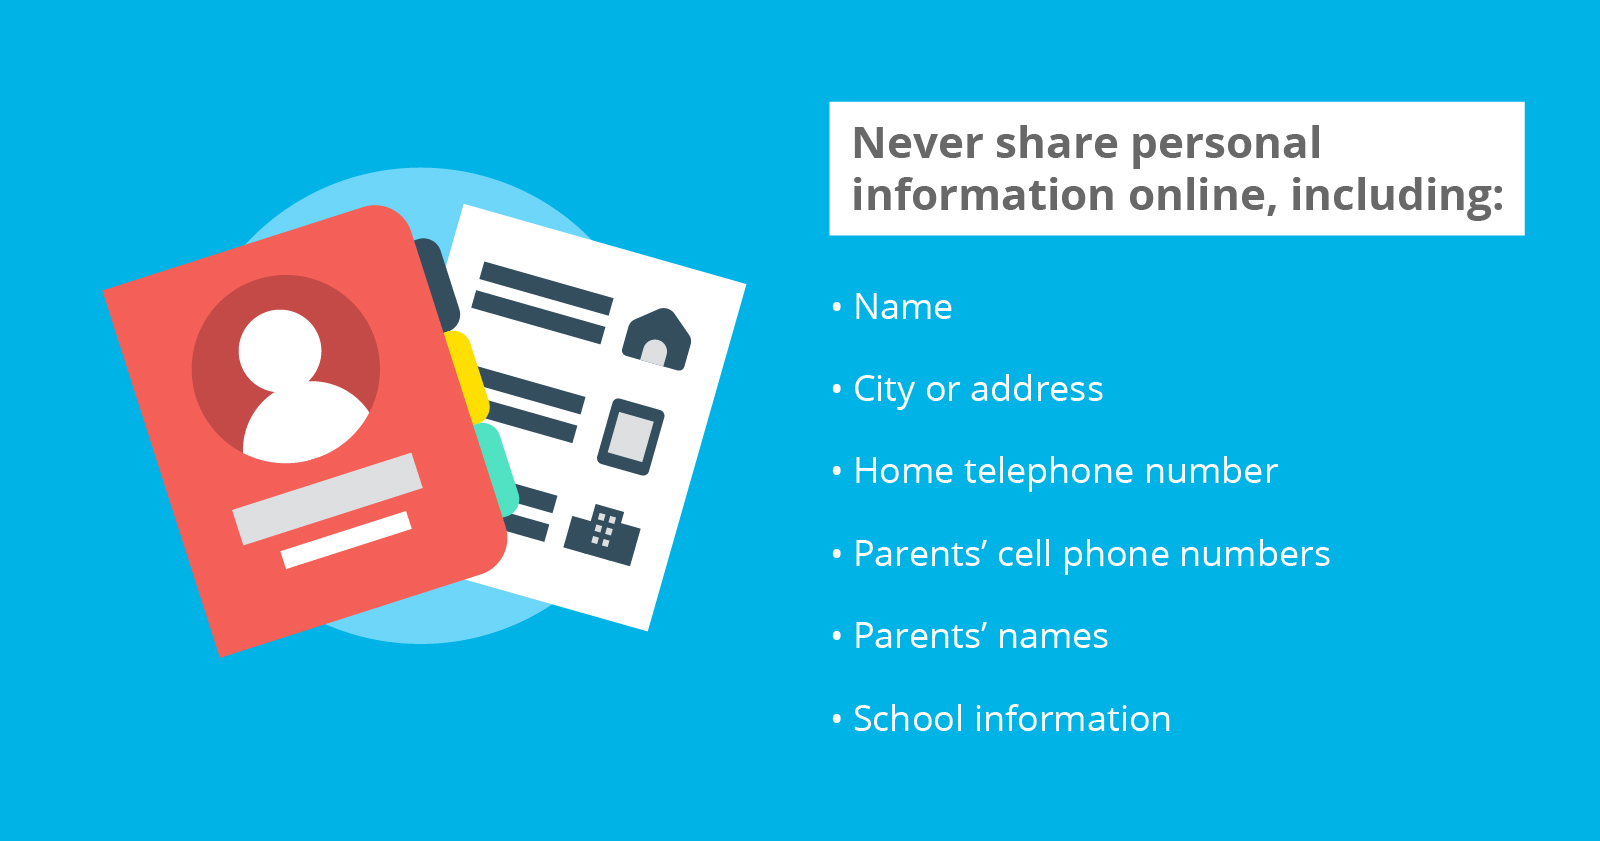 A list of personal information not to share online